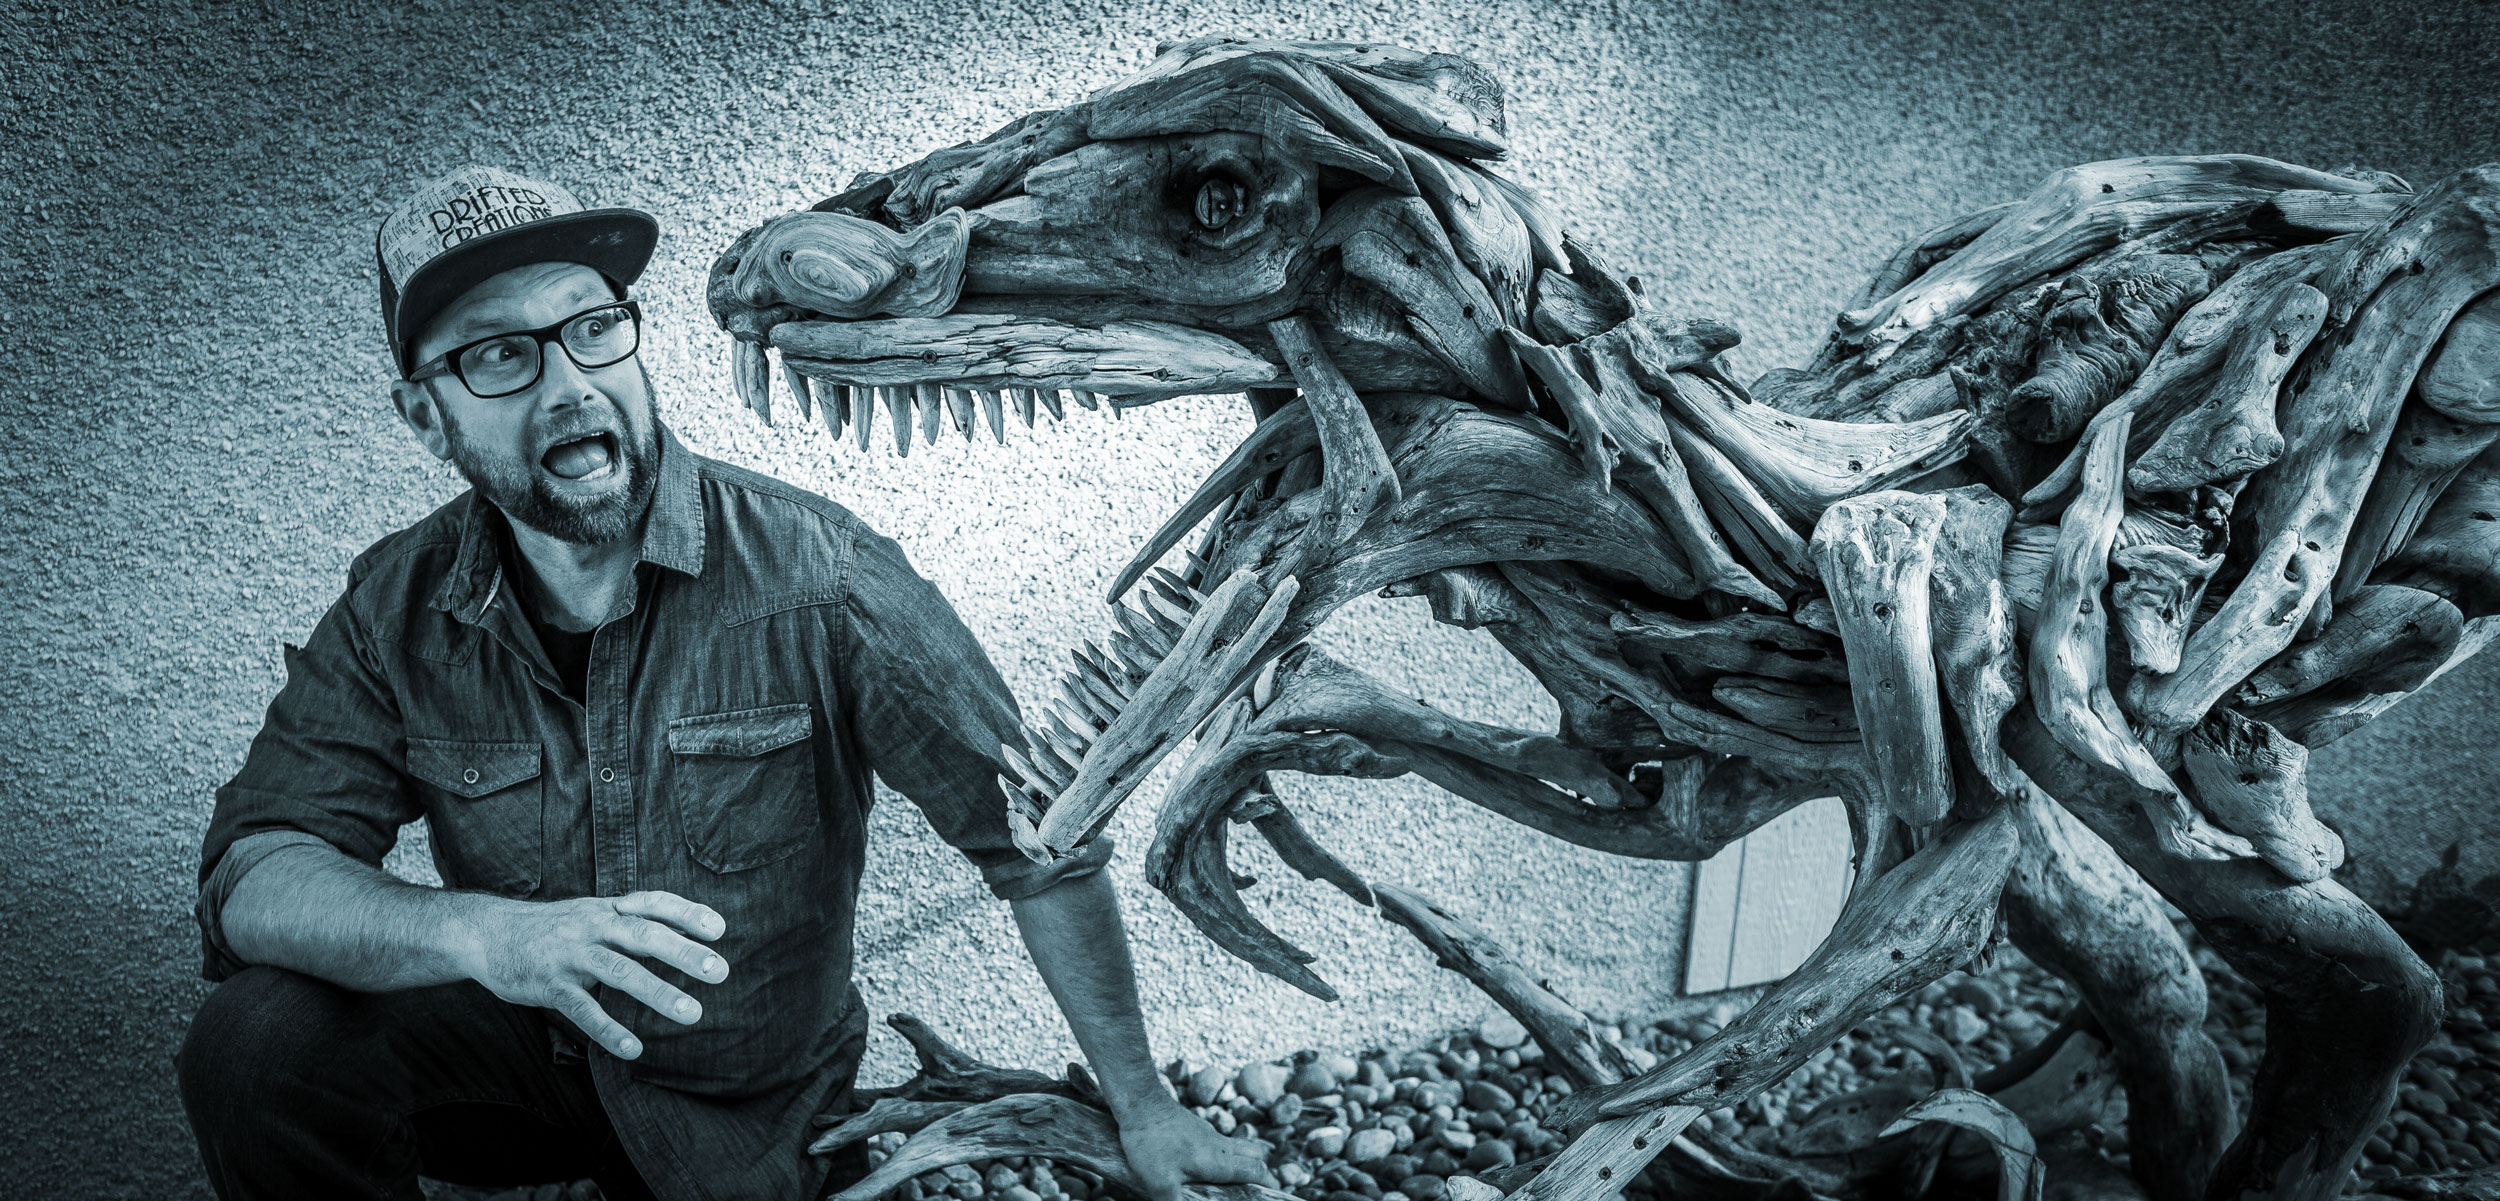 Driftwood artist Alex Witcombe poses with a Velociraptor sculpture